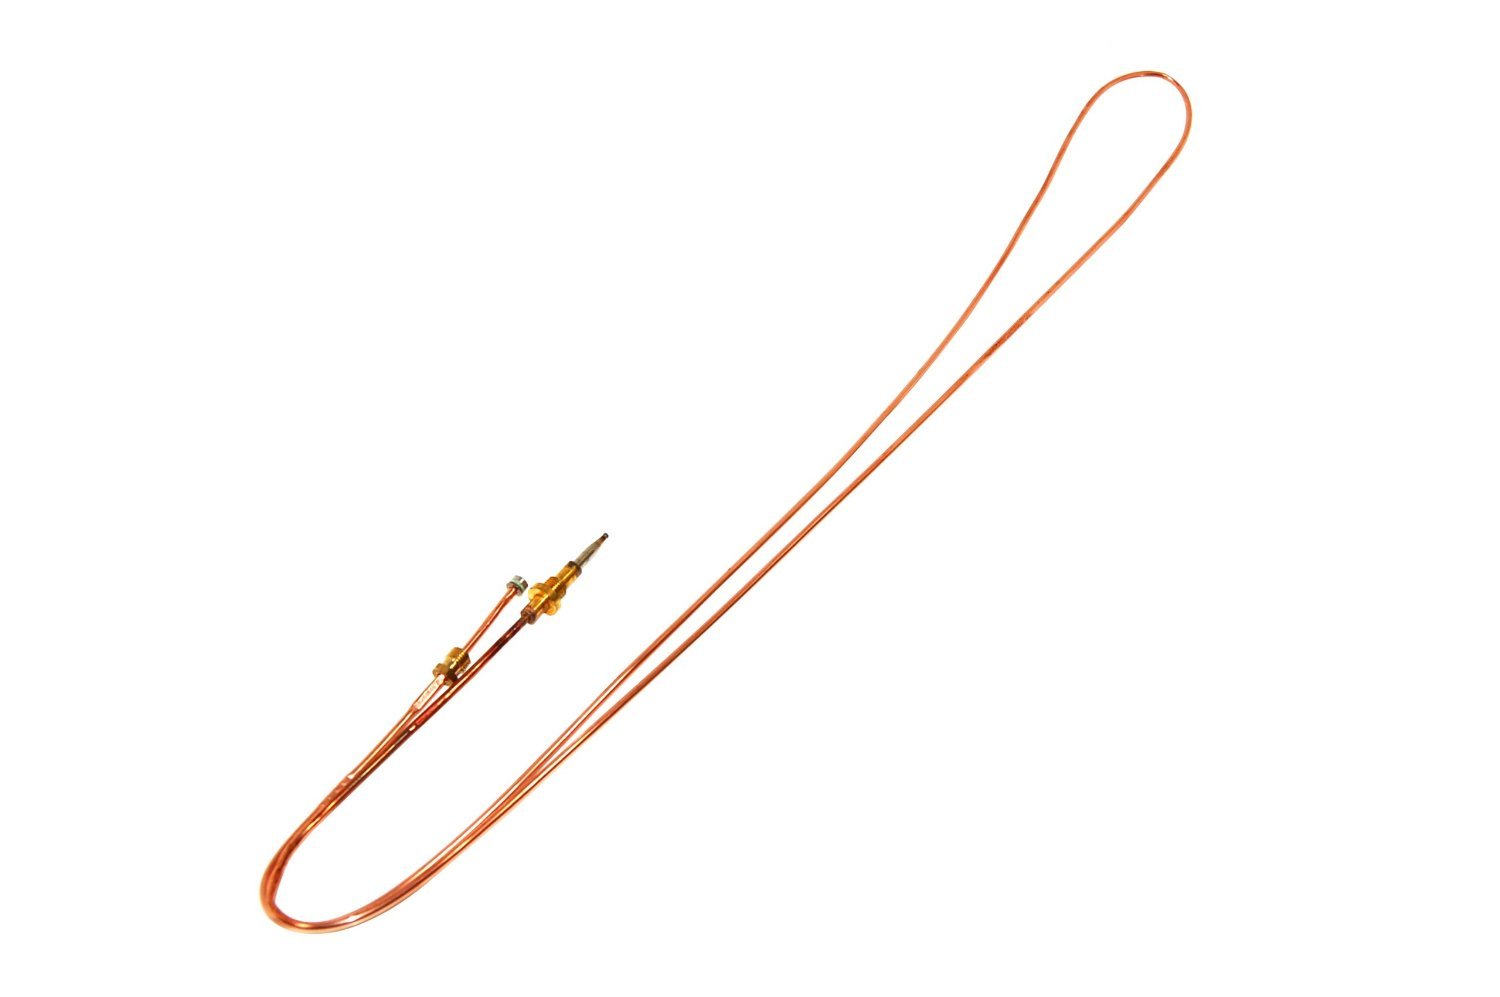 Beko Belling Flavel (Arcelik) Leisure New World Stoves Oven Main Top Oven Thermocouple. Genuine Part Number 230100020